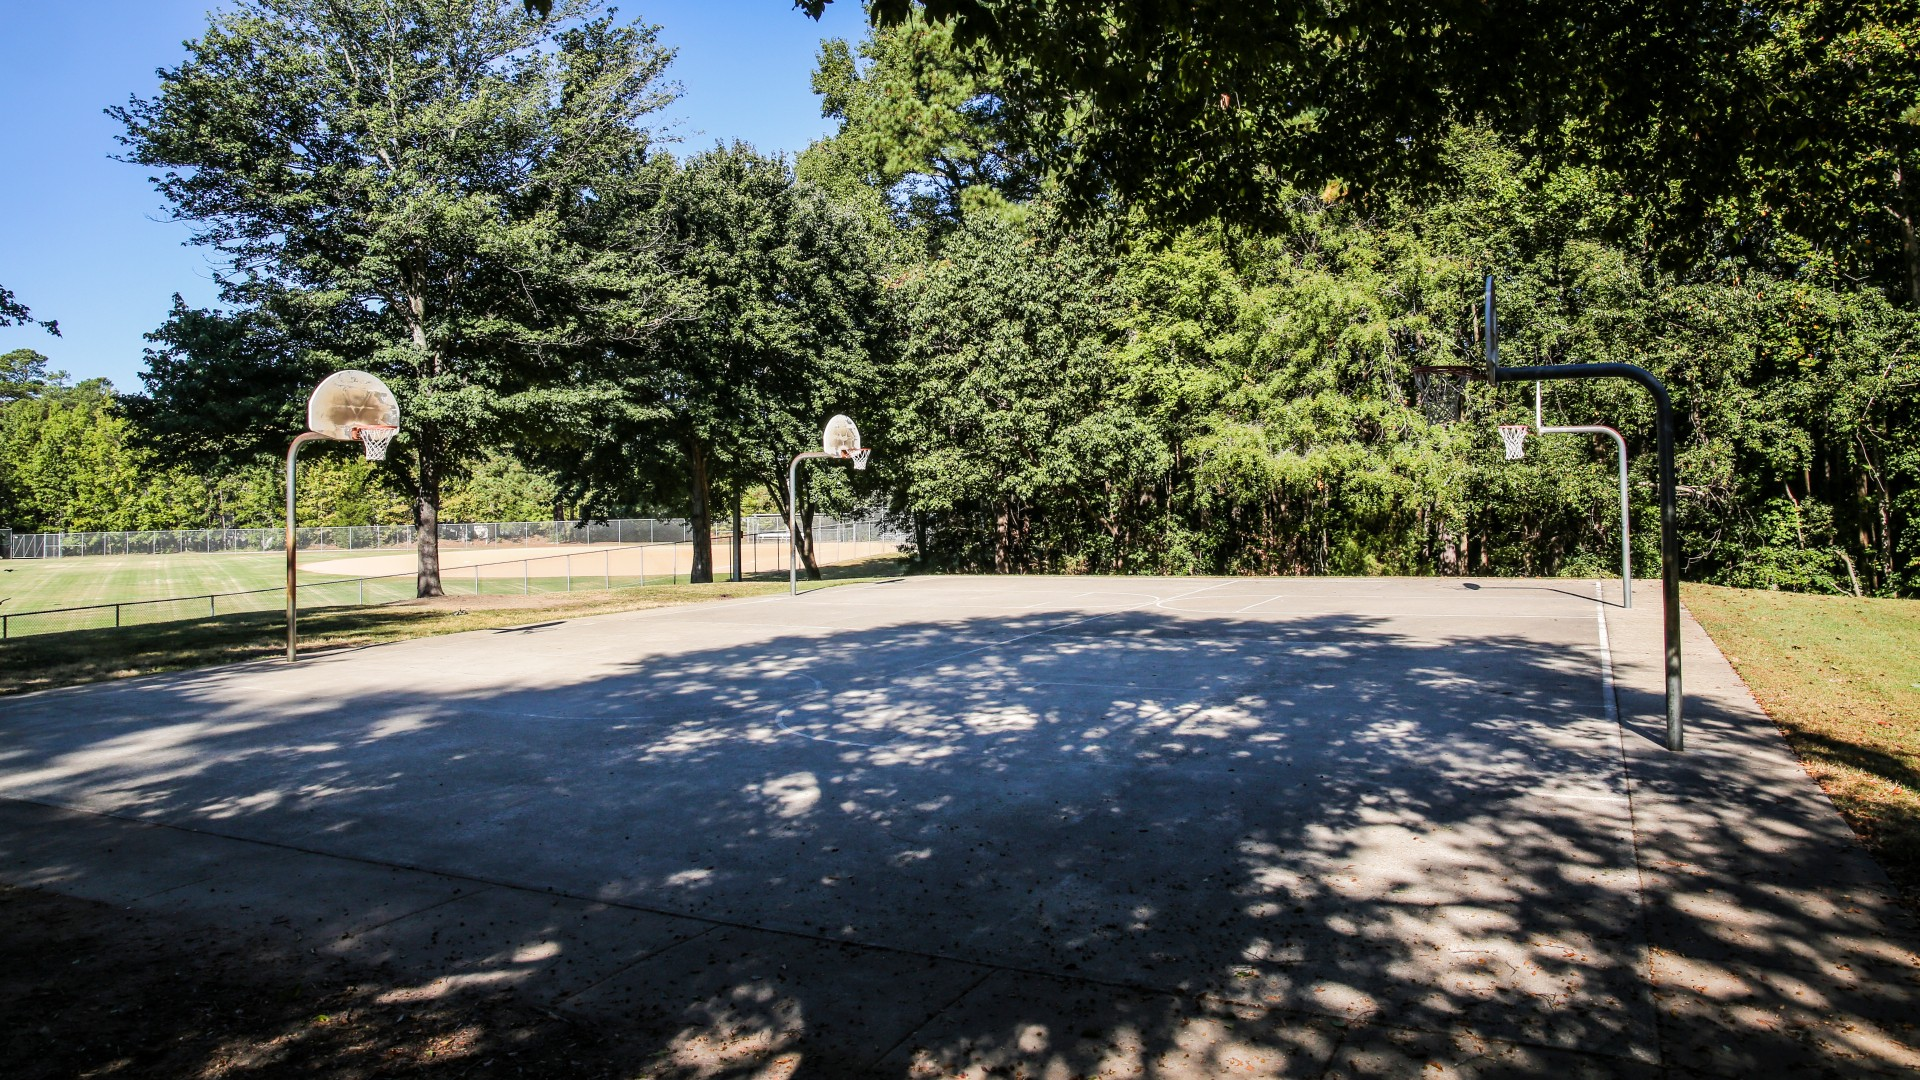 Shot of the two outdoor basketball courts and hoops at Green Road Park